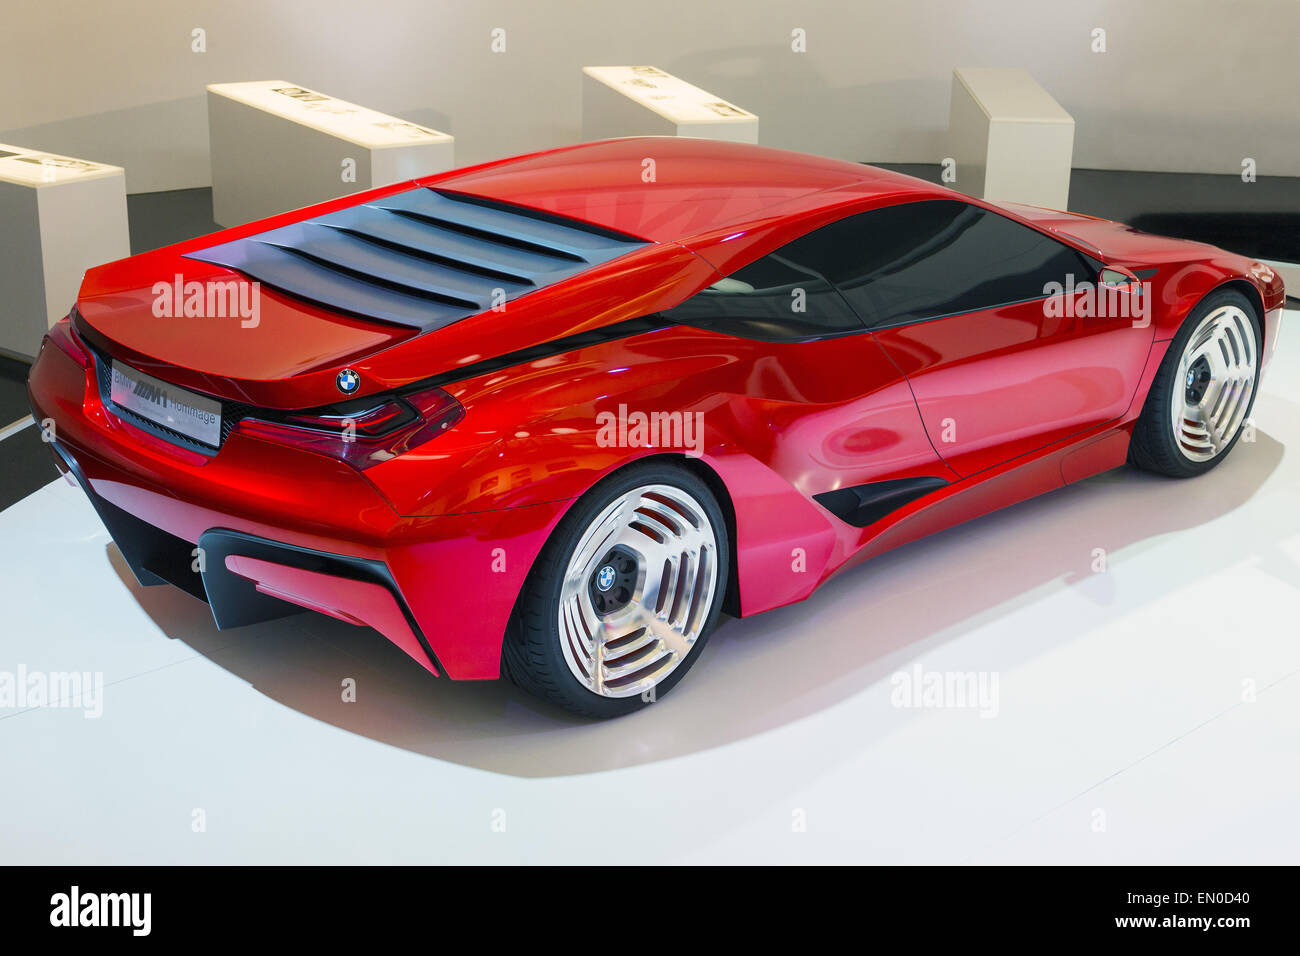 BMW M1 Homage at the BMW museum. The M1 Homage Concept was launched ...